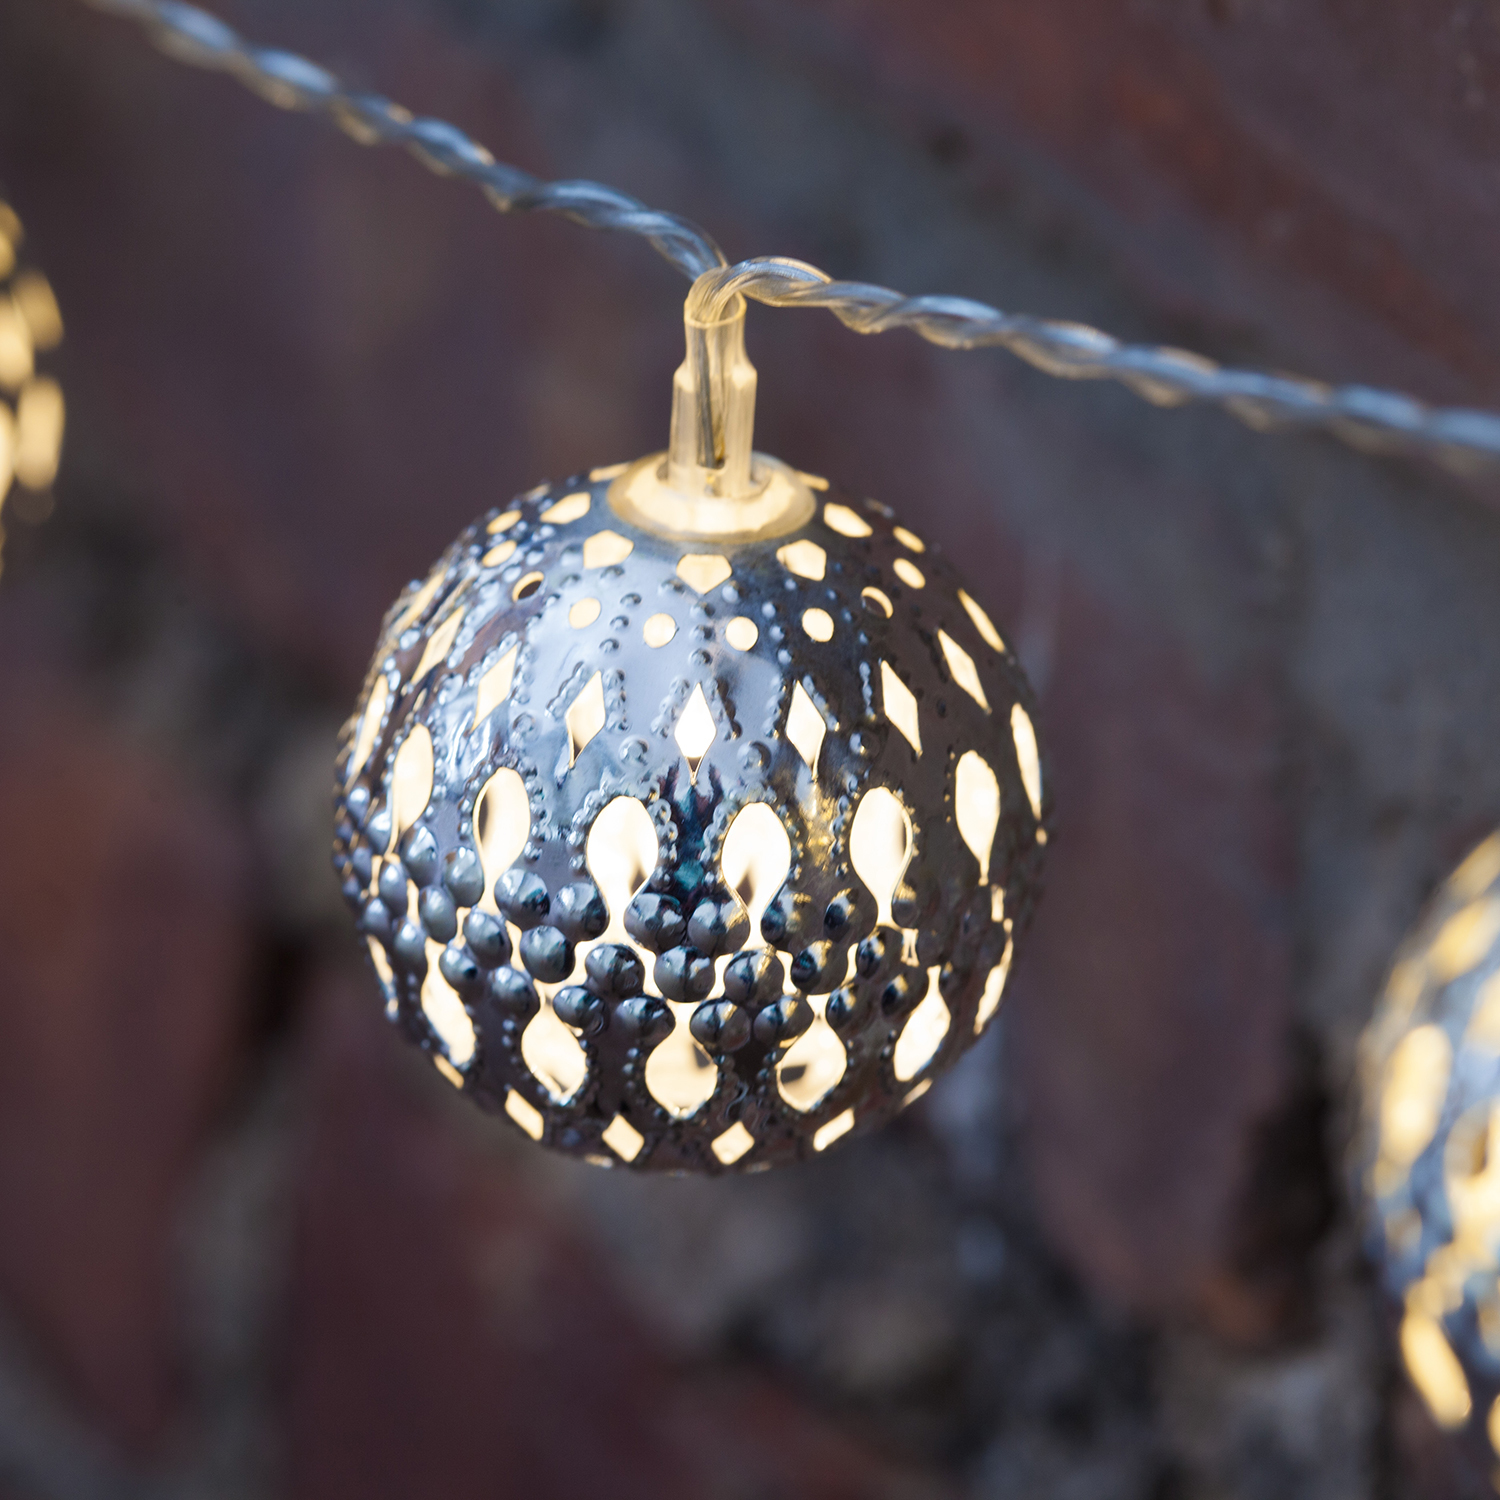 Metal Globe String Lights : Lights.com String Lights Battery String Lights Moroccan Bauble Battery Operated String ...